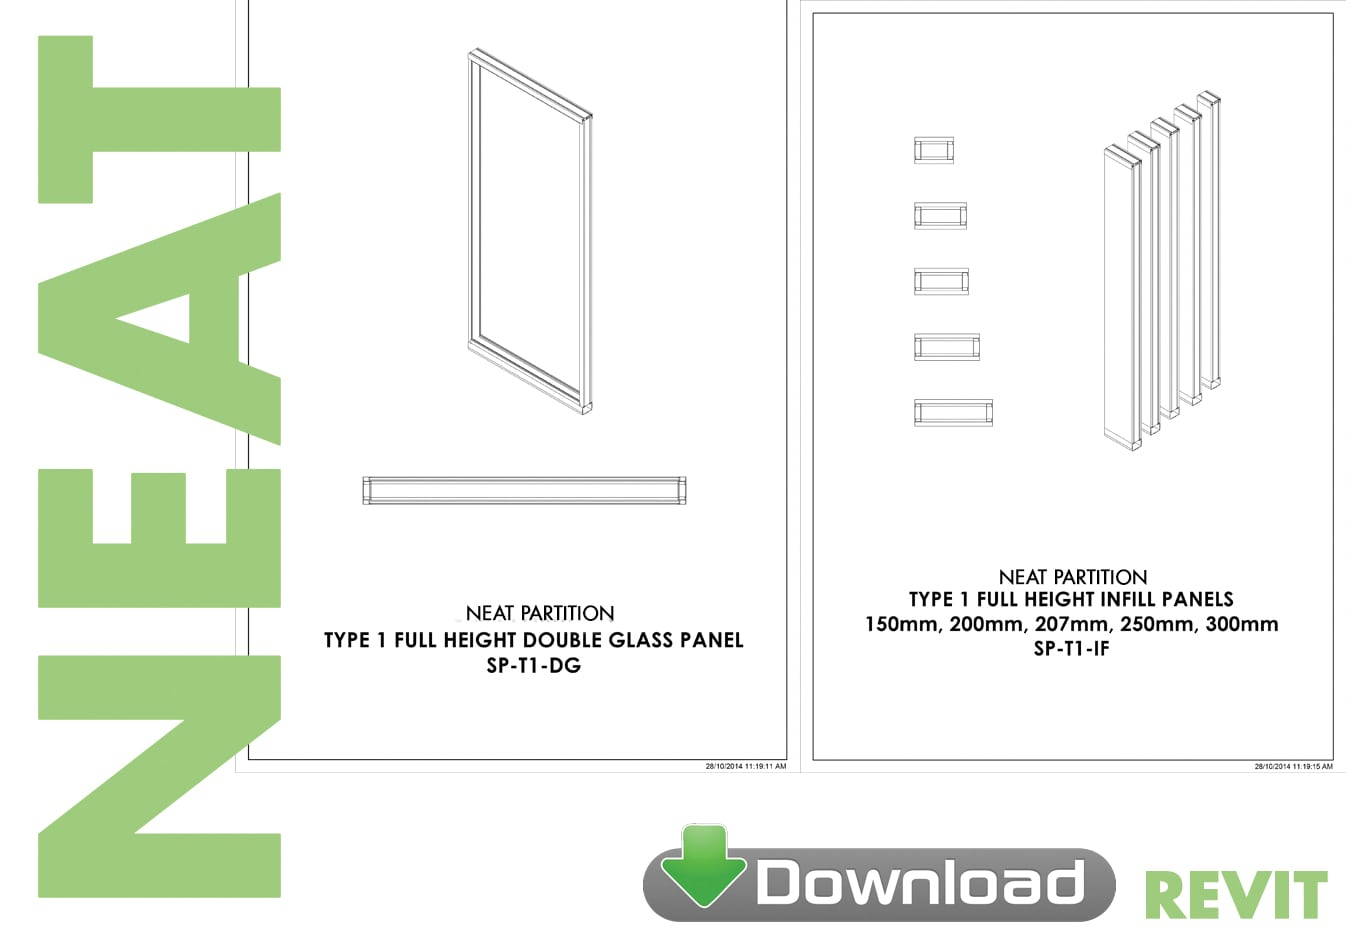 Neat Partition System Revit download - Formula Interiors